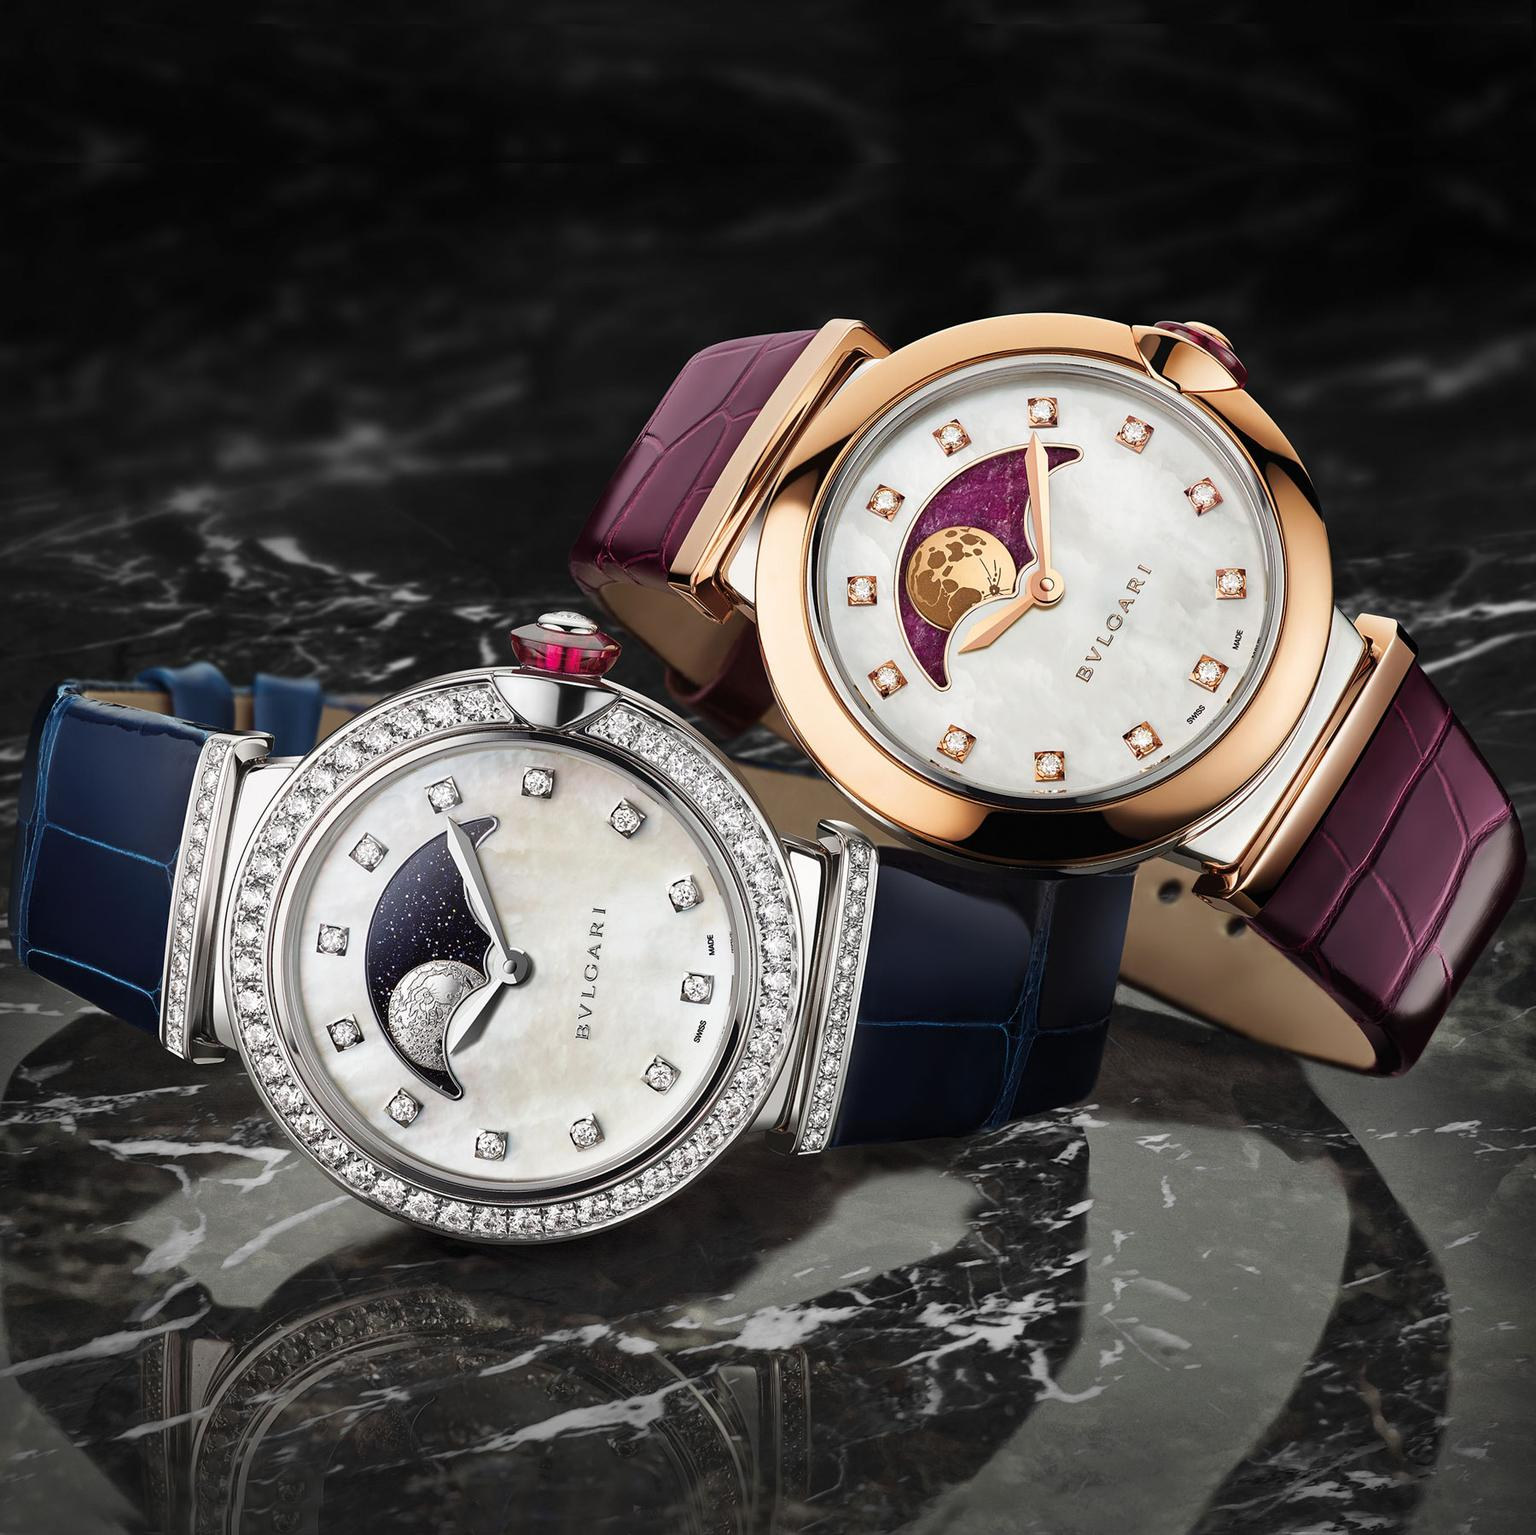 Bulgari Lucea Moon Phase watches